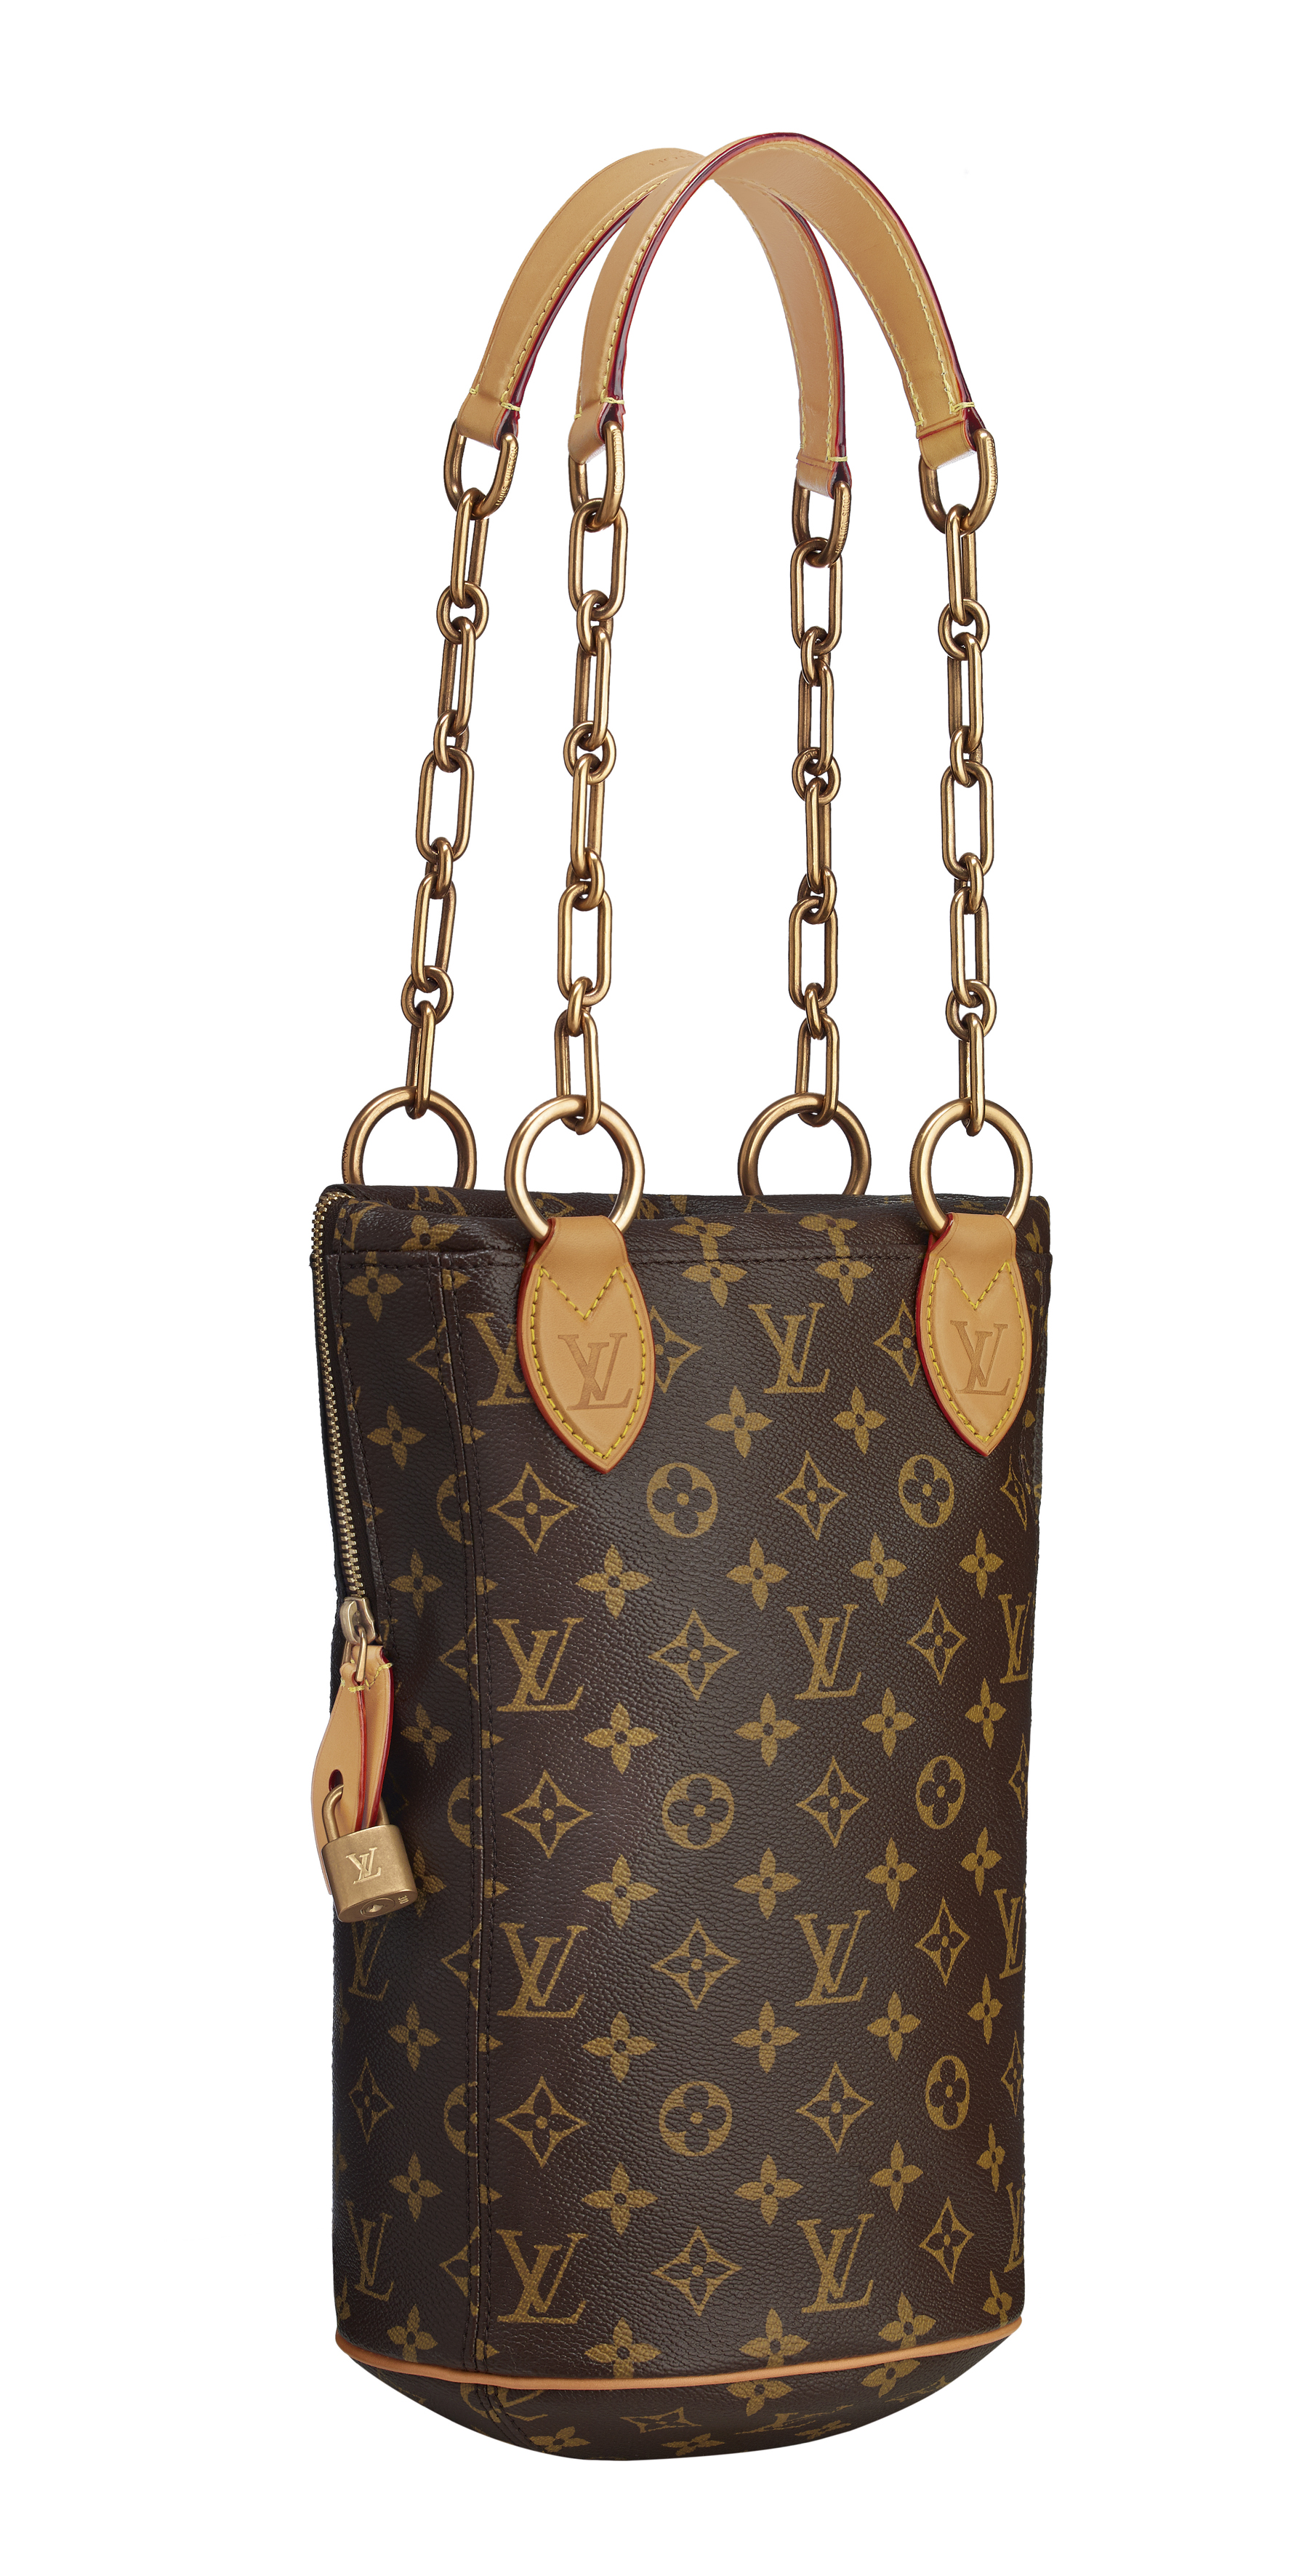 Louis Vuitton Celebrating Monogram - happyface313happyface313